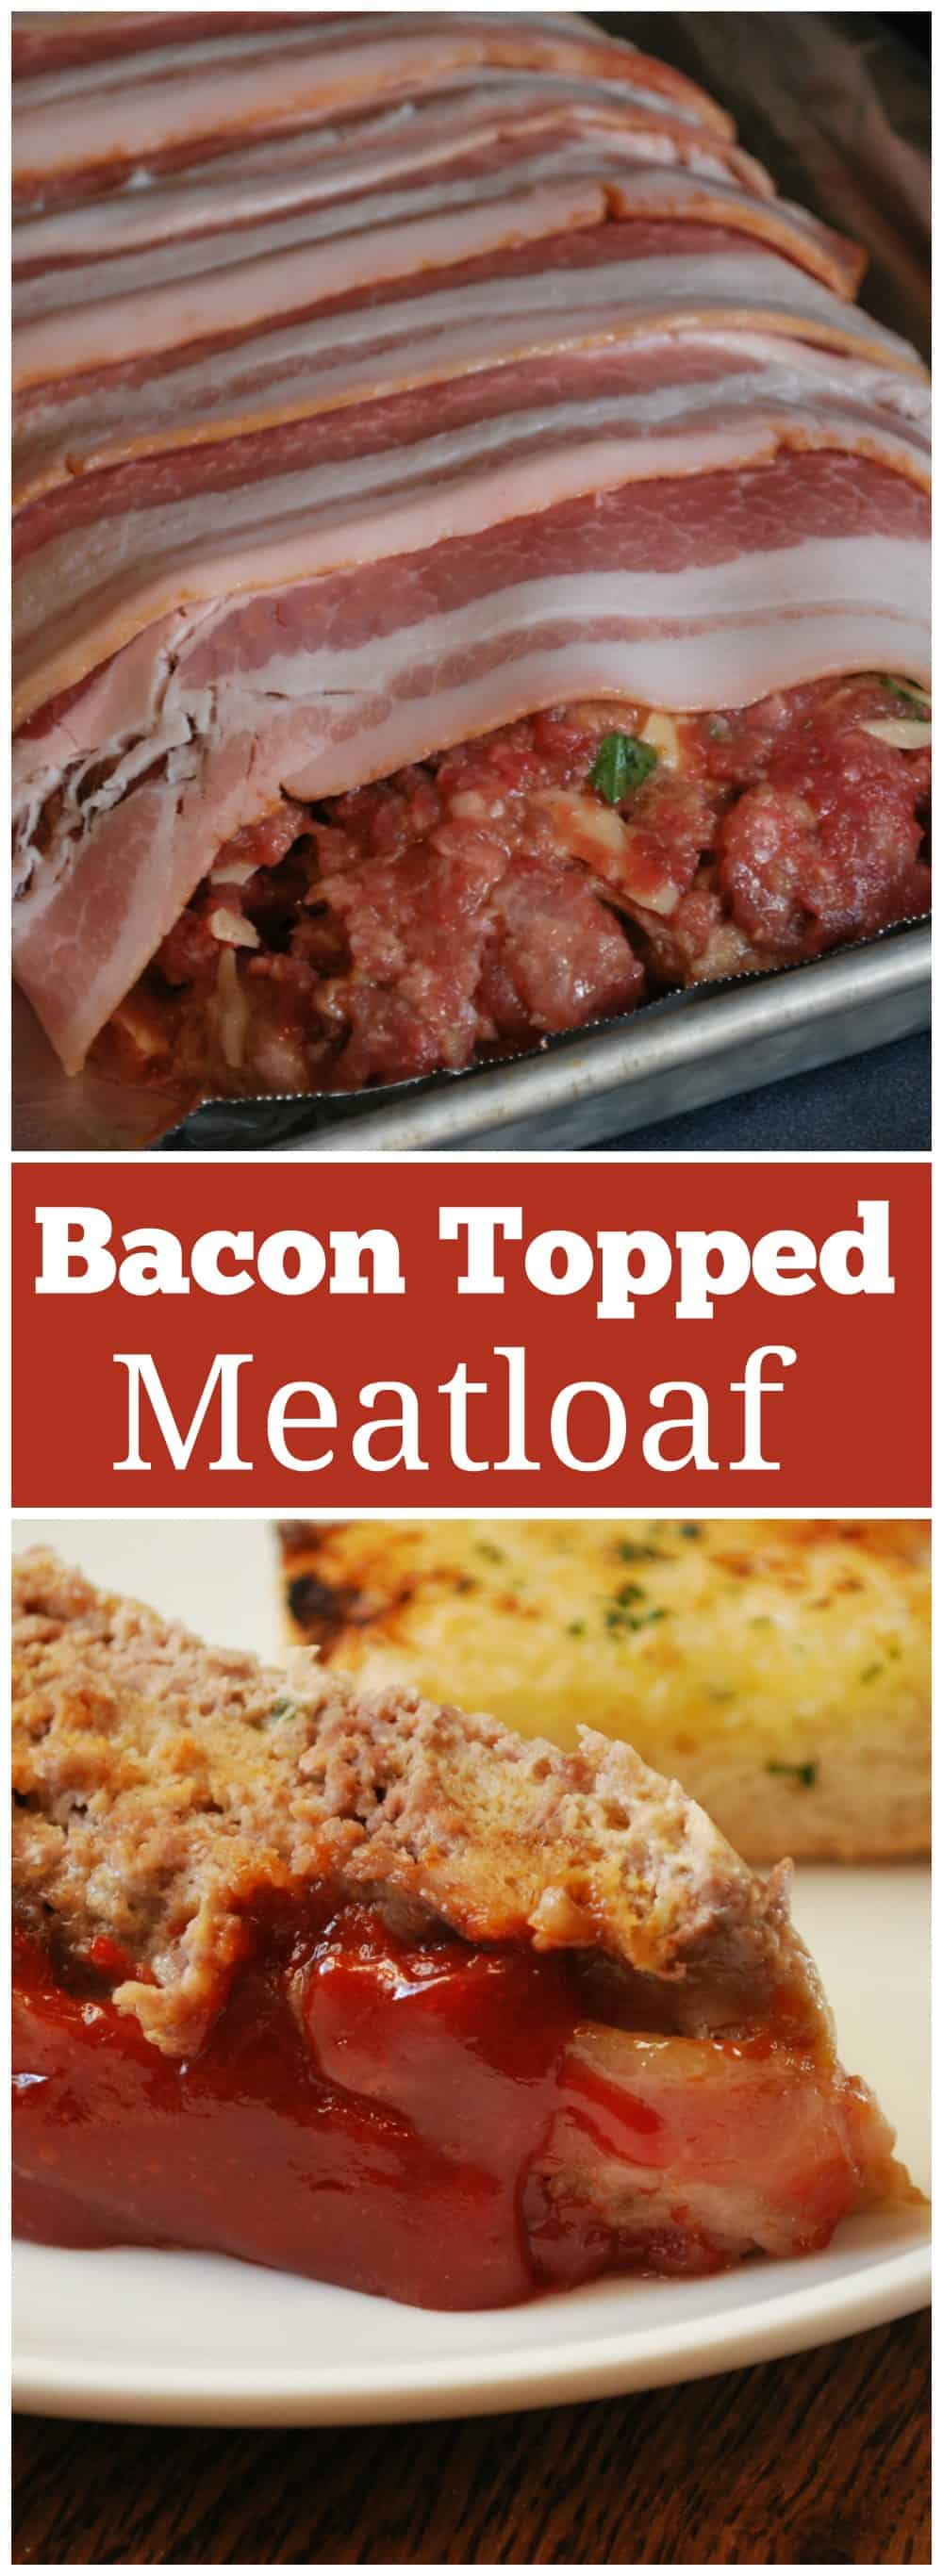 Bacon Wrapped Meatloaf - moist and tender meatloaf wrappd in bacon and topped with a tangy ketchup-based sauce.